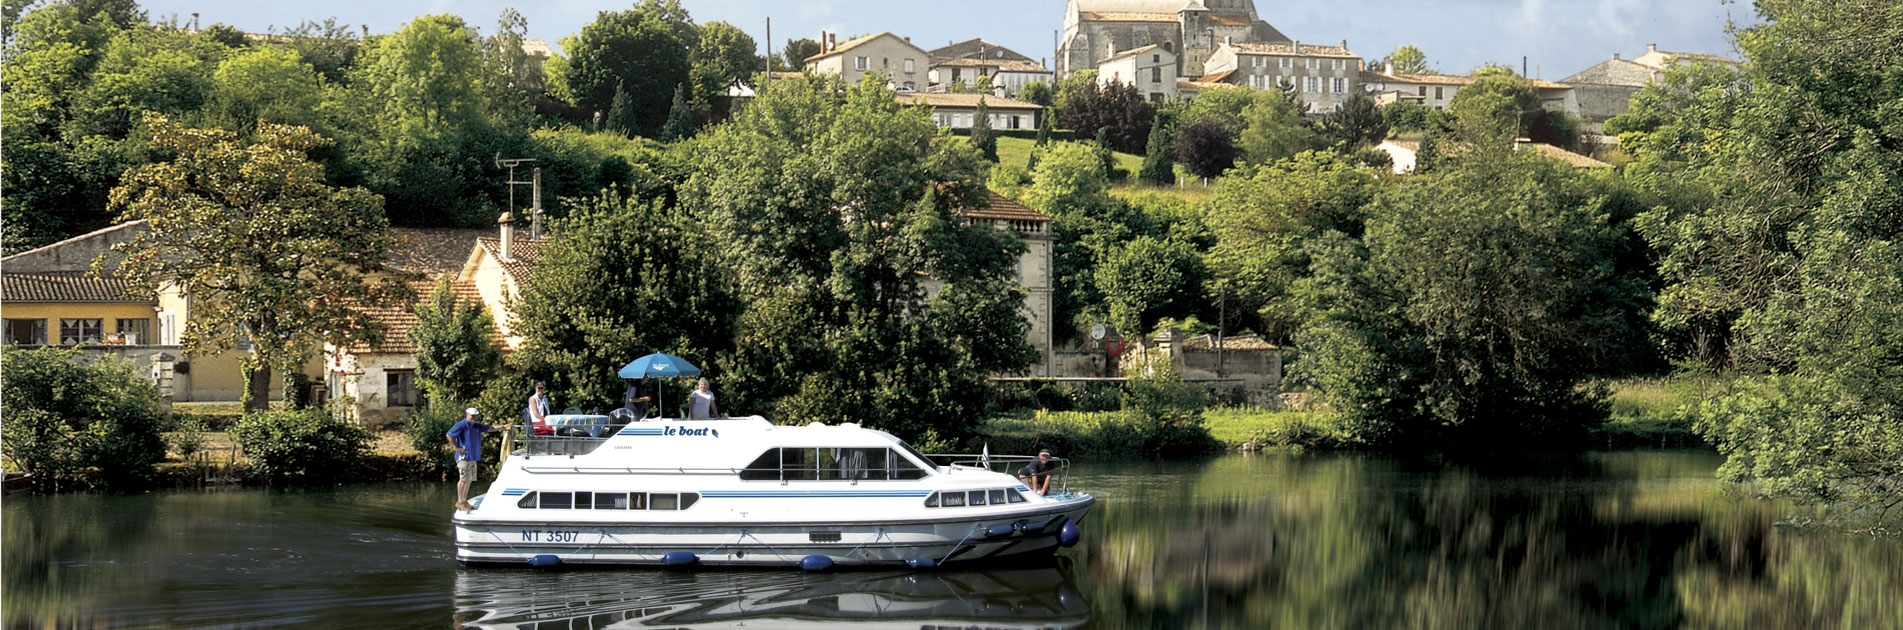 Slow sailing on riverboat in Charente